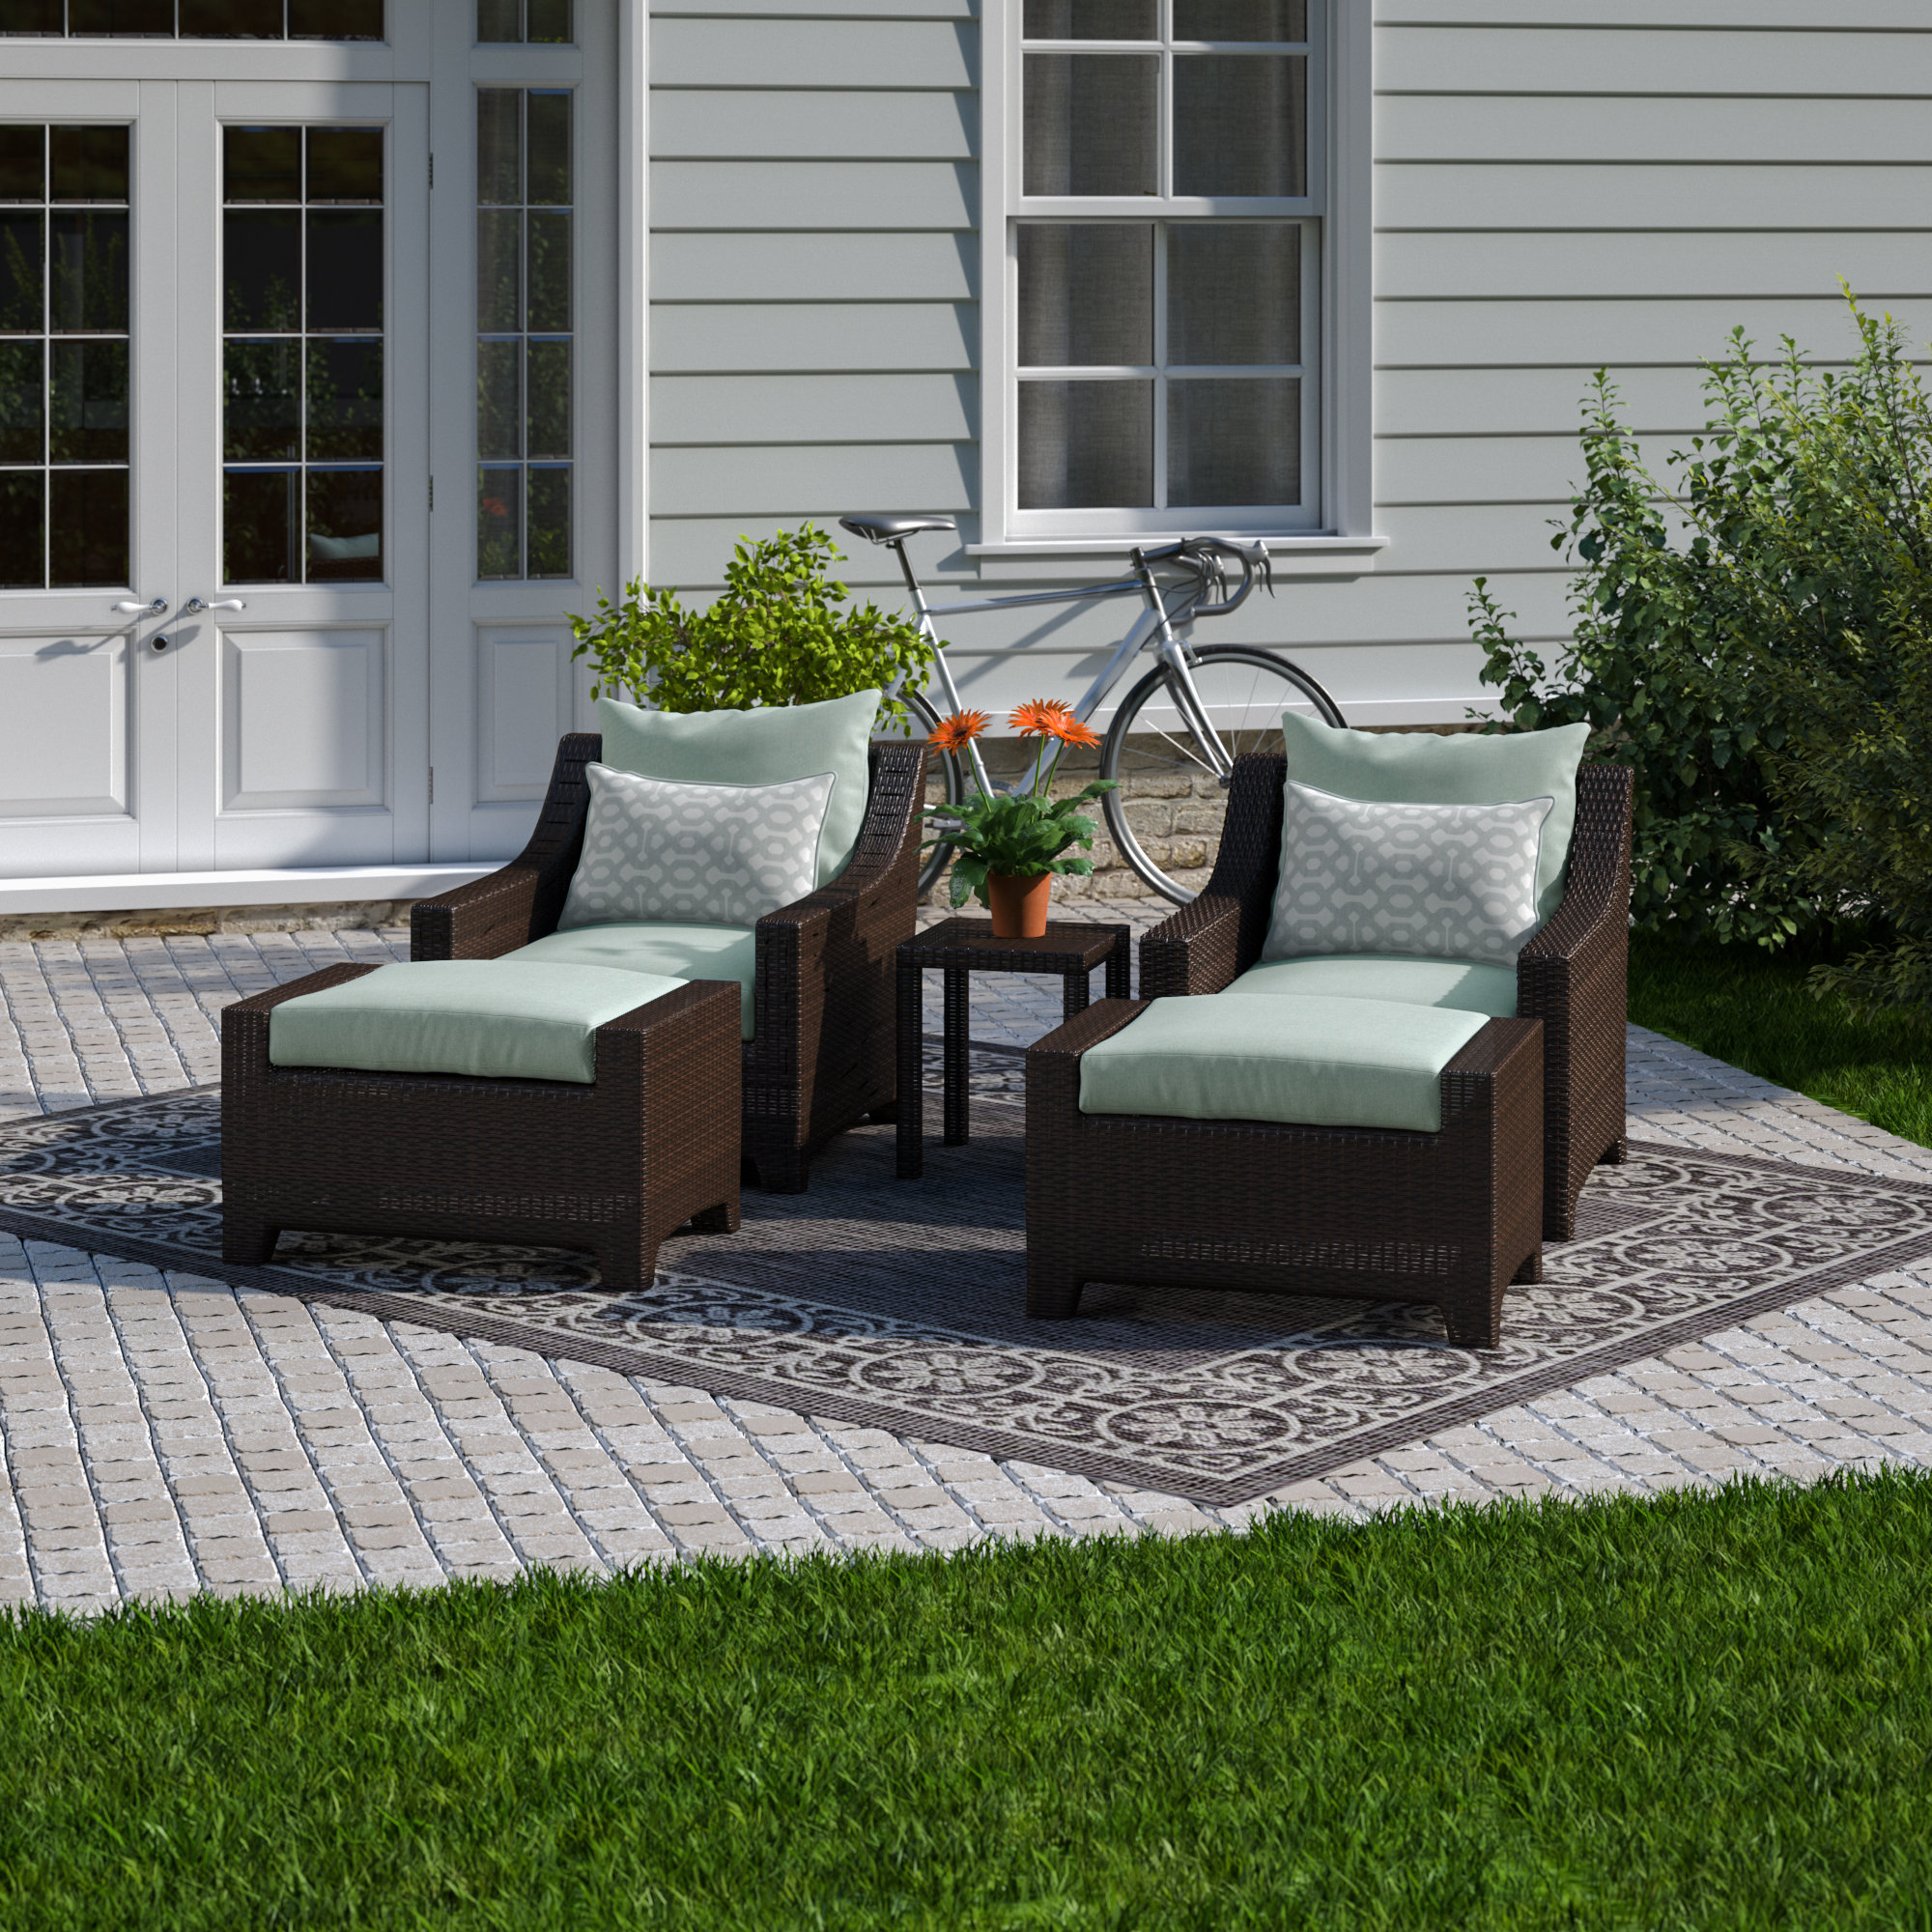 2020 Northridge 5 Piece Conversation Set With Sunbrella Cushions Regarding Northridge Patio Sofas With Sunbrella Cushions (View 1 of 20)